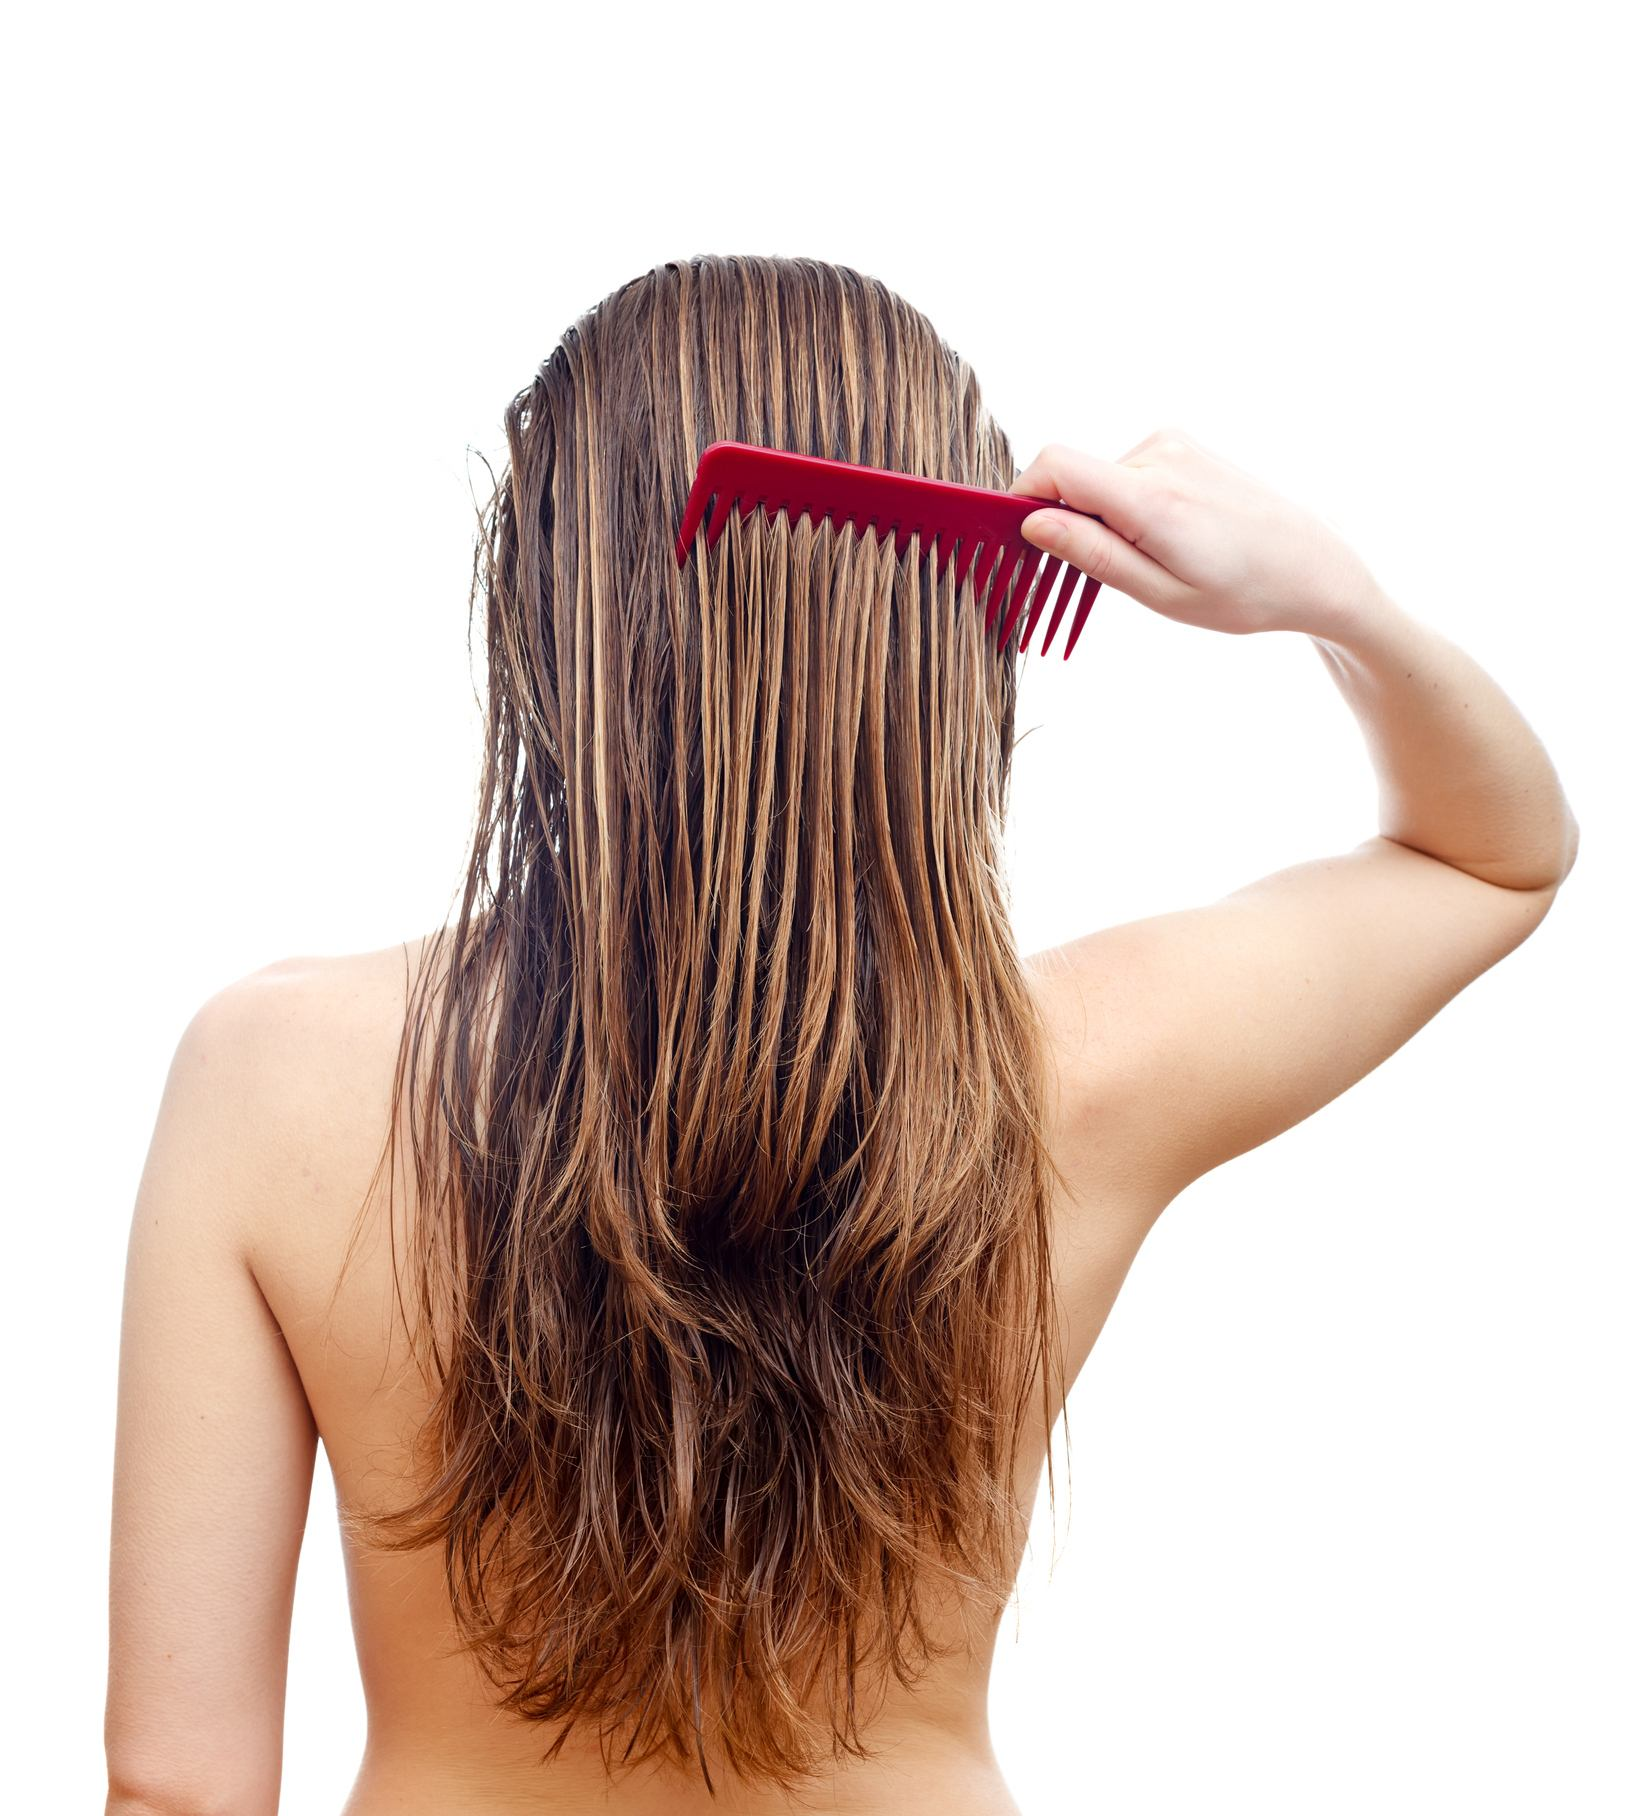 Back shot of a woman combing her long brown hair